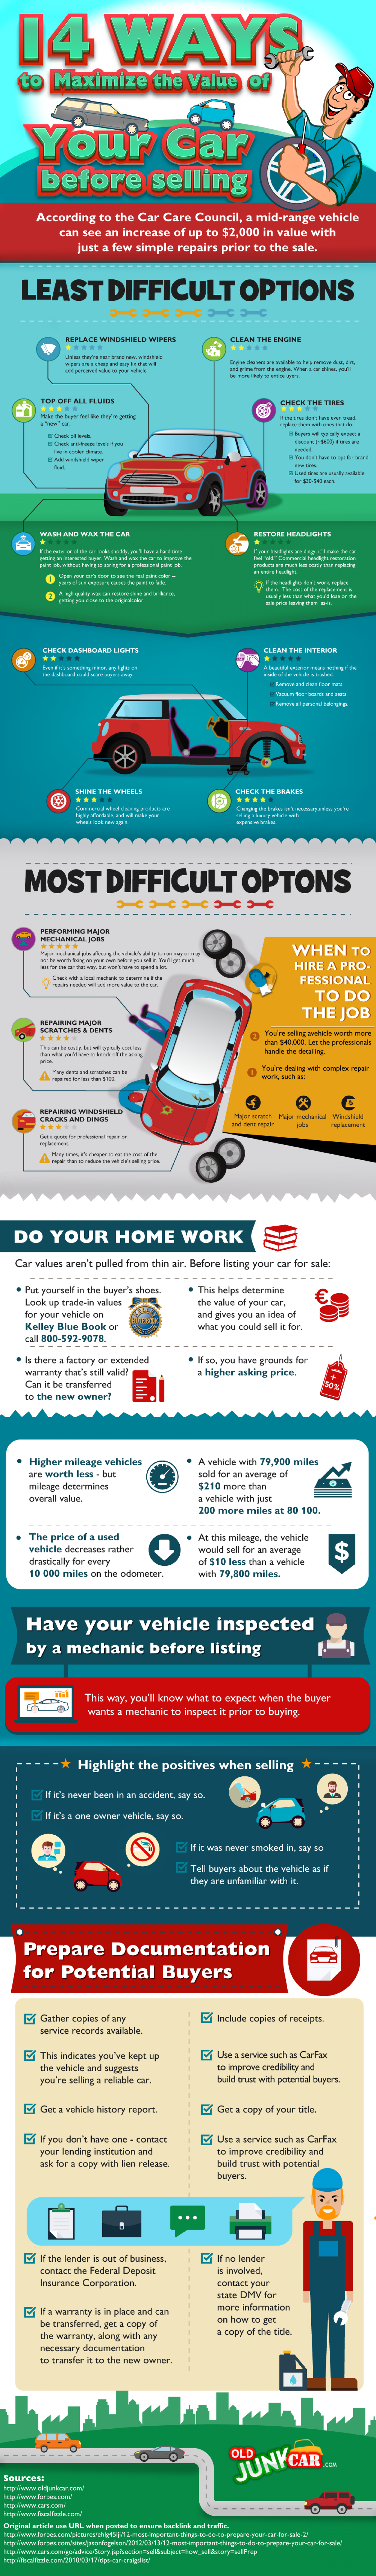 14 Ways To Maximize The Value of Your Car Before Selling Infographic